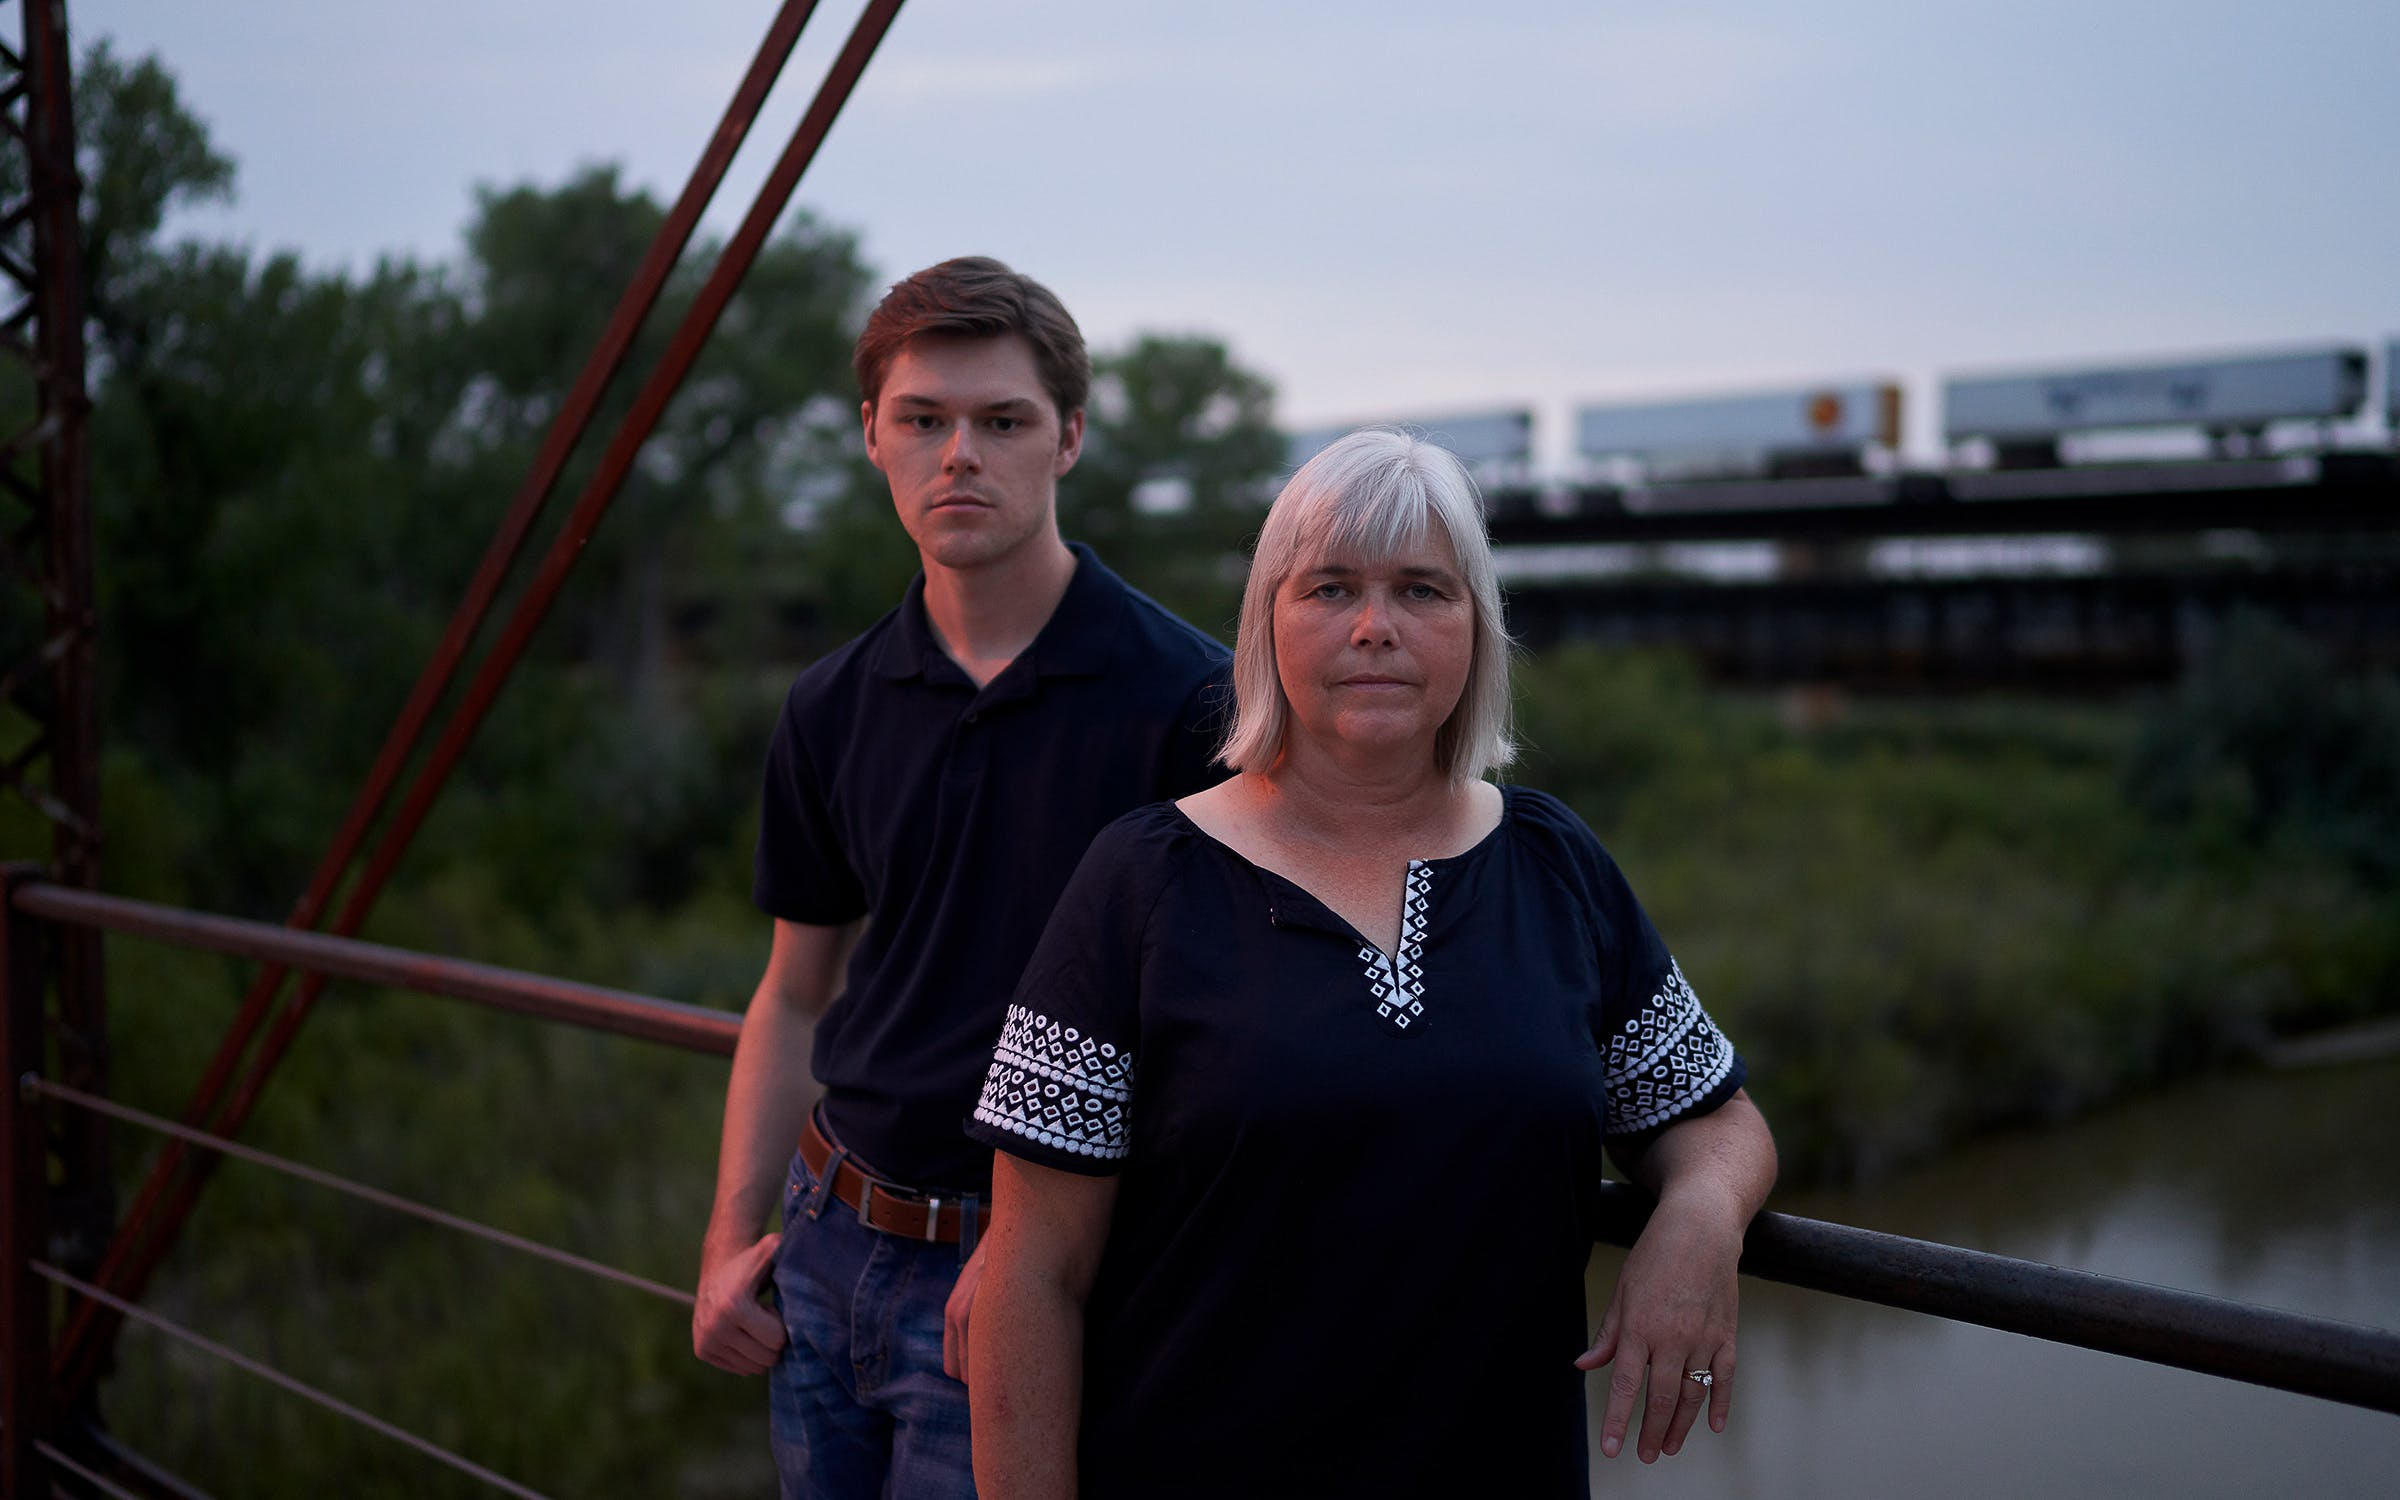 Tucker Brown and Penny Meek on the walking bridge in Canadian on August 14, 2020.